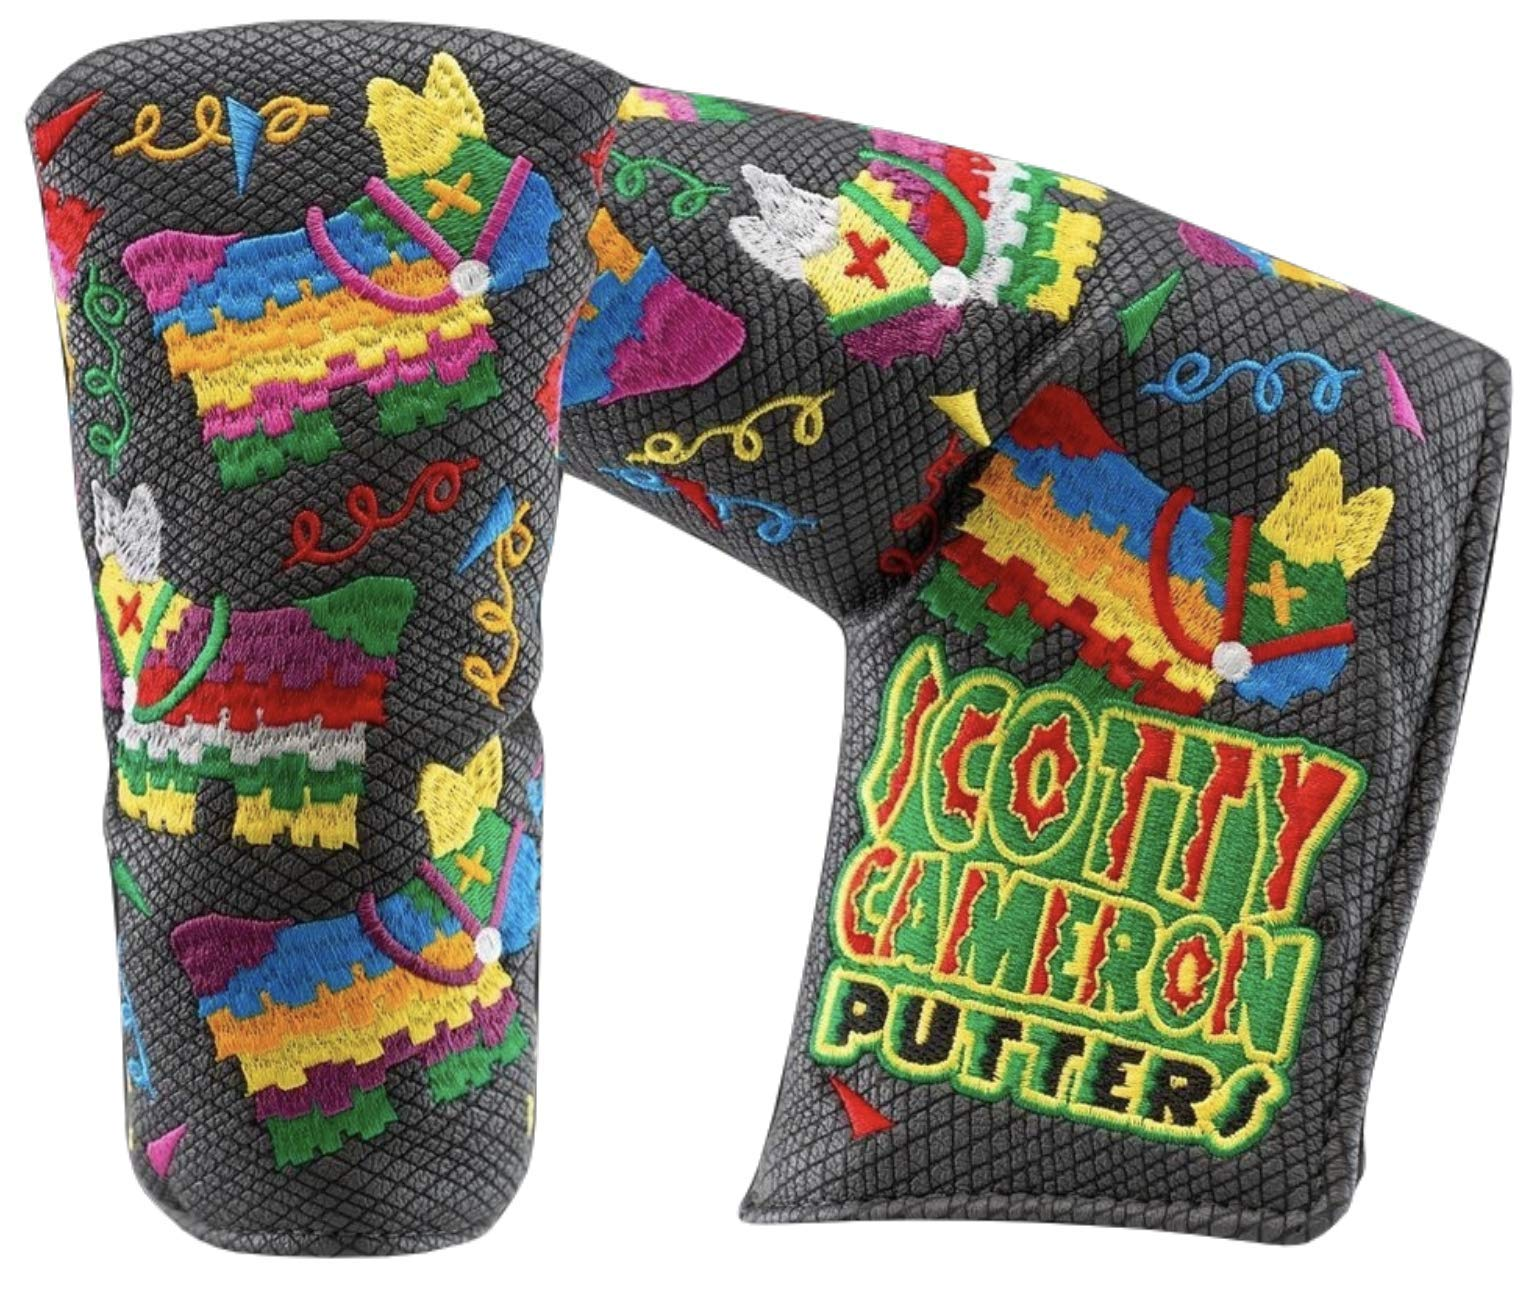 Scotty Cameron 2019 Cinco De Mayo Limited Edition Putter Headcover